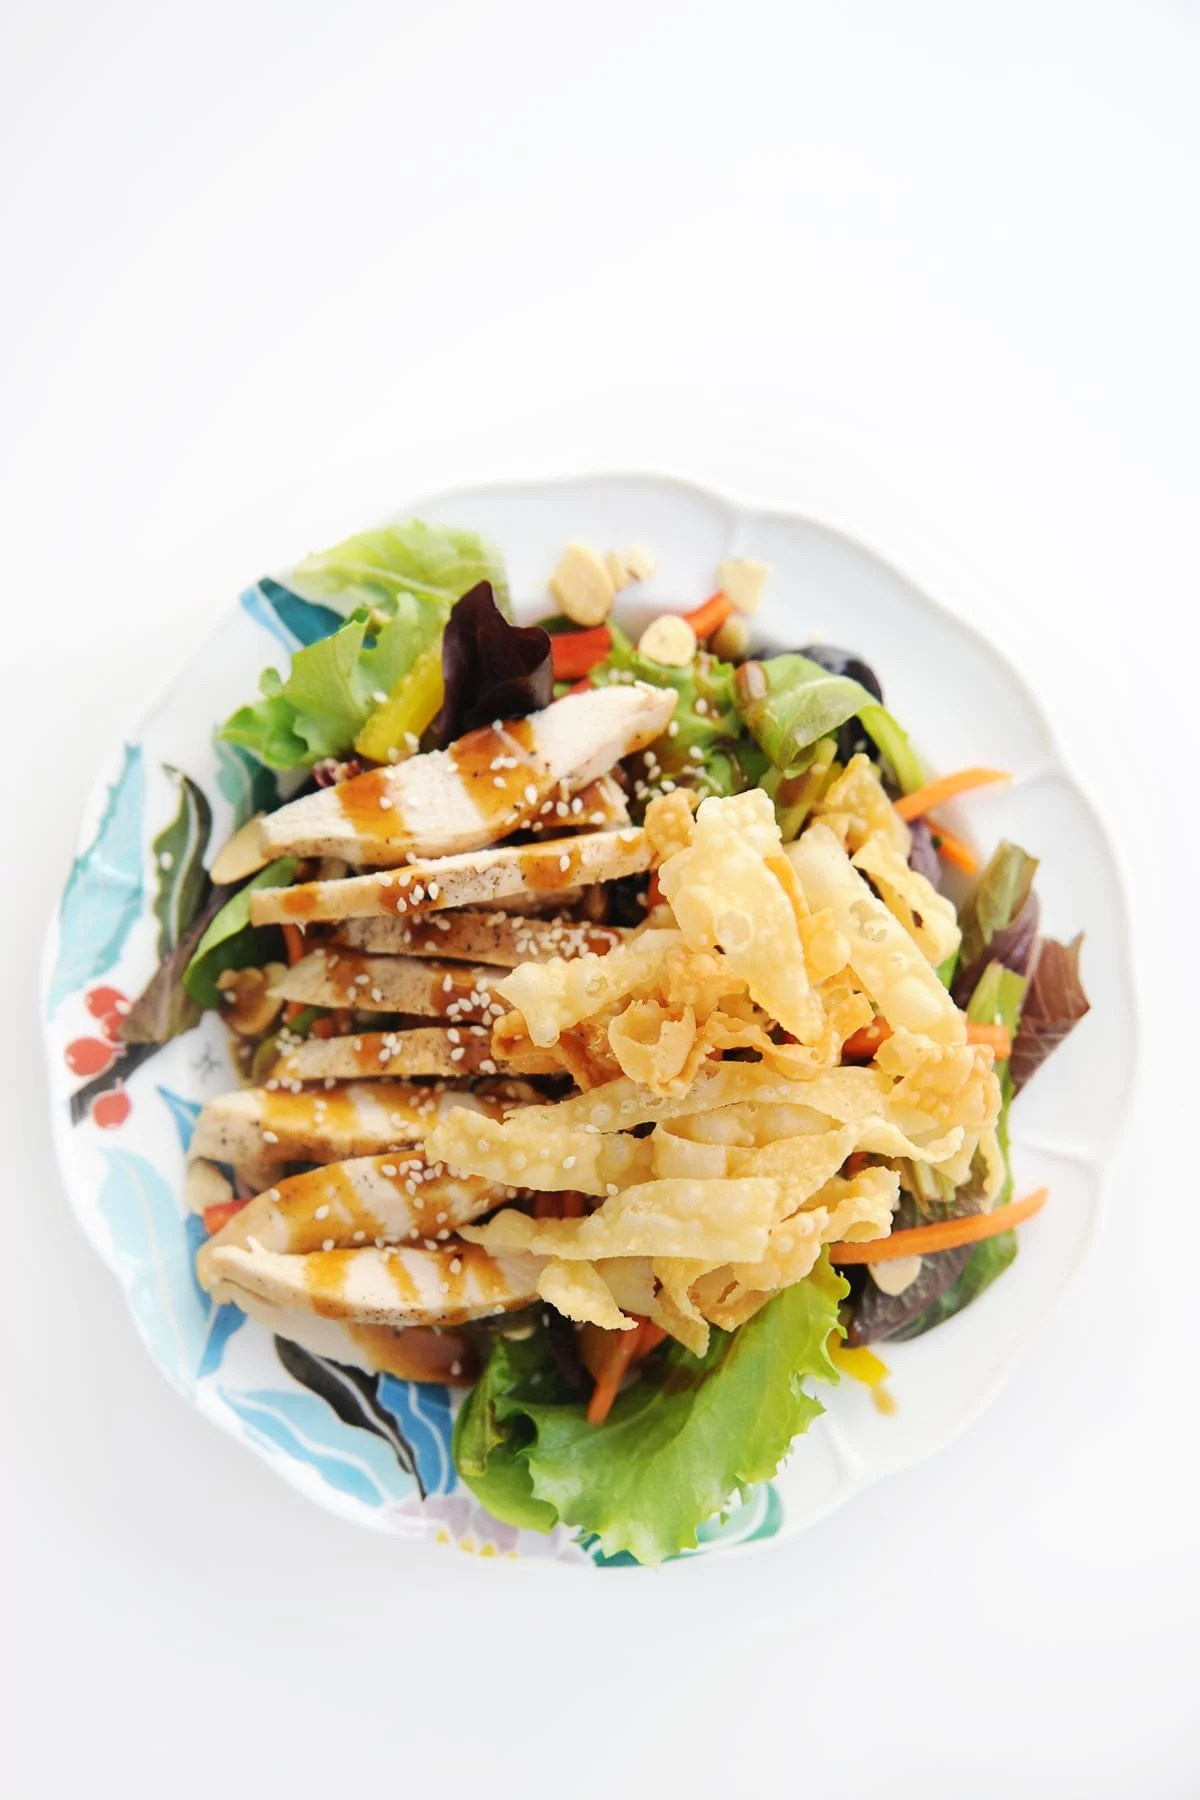 Nordstrom Cafe Recipes for Salads : Chinese Chicken Salad Recipe